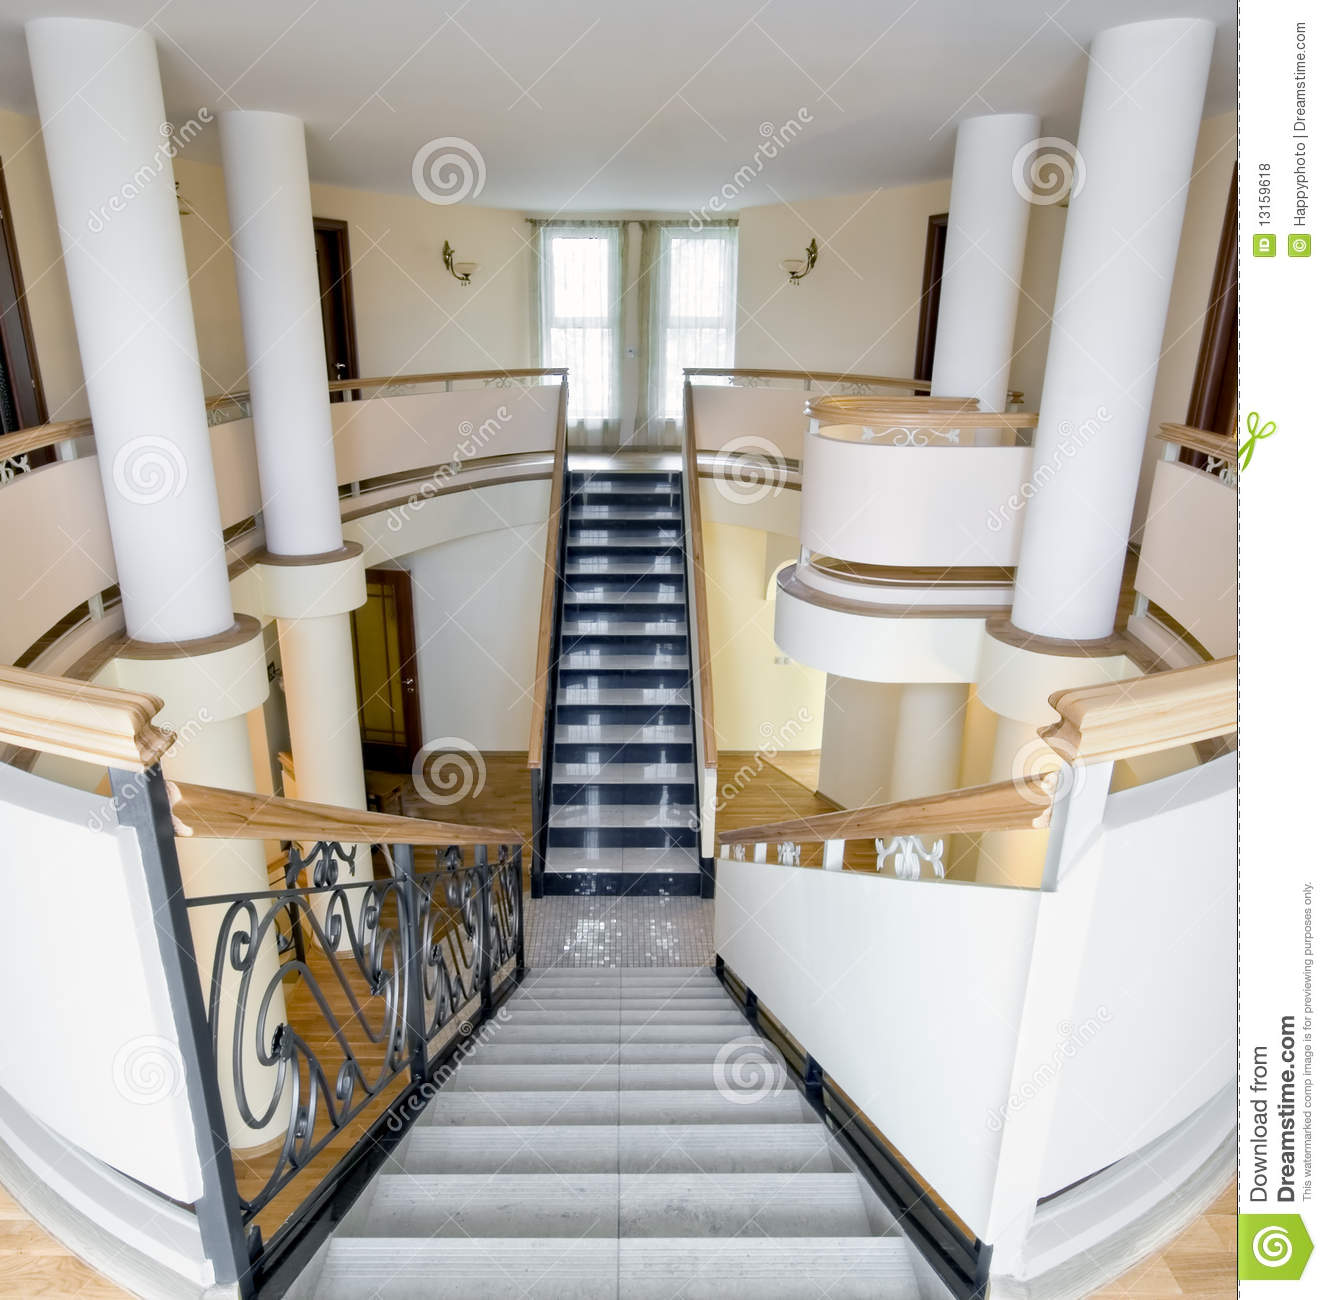 Mansion Interior With Staircase And Balcony Stock Photo